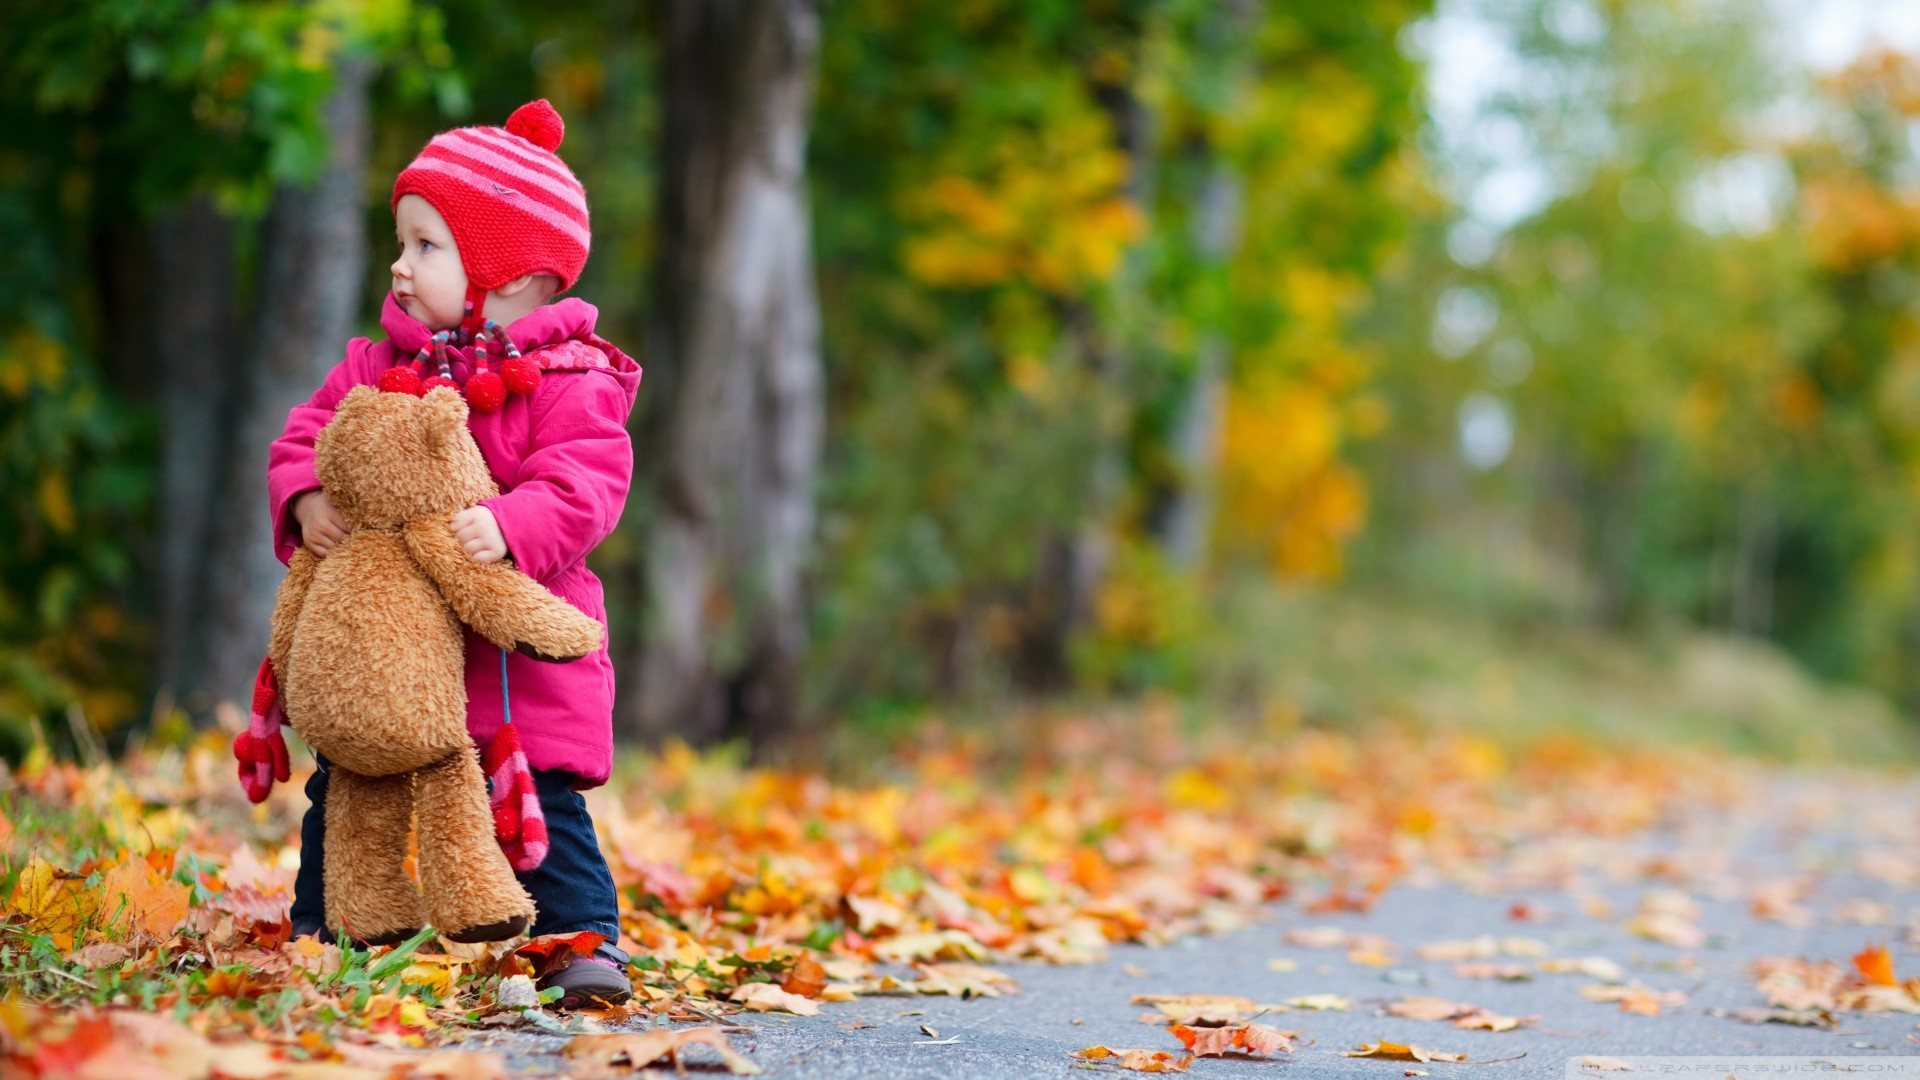 Res: 1920x1080, Baby Kid With Teddy Bear in Autumn Season Wallpaper 5656 #783